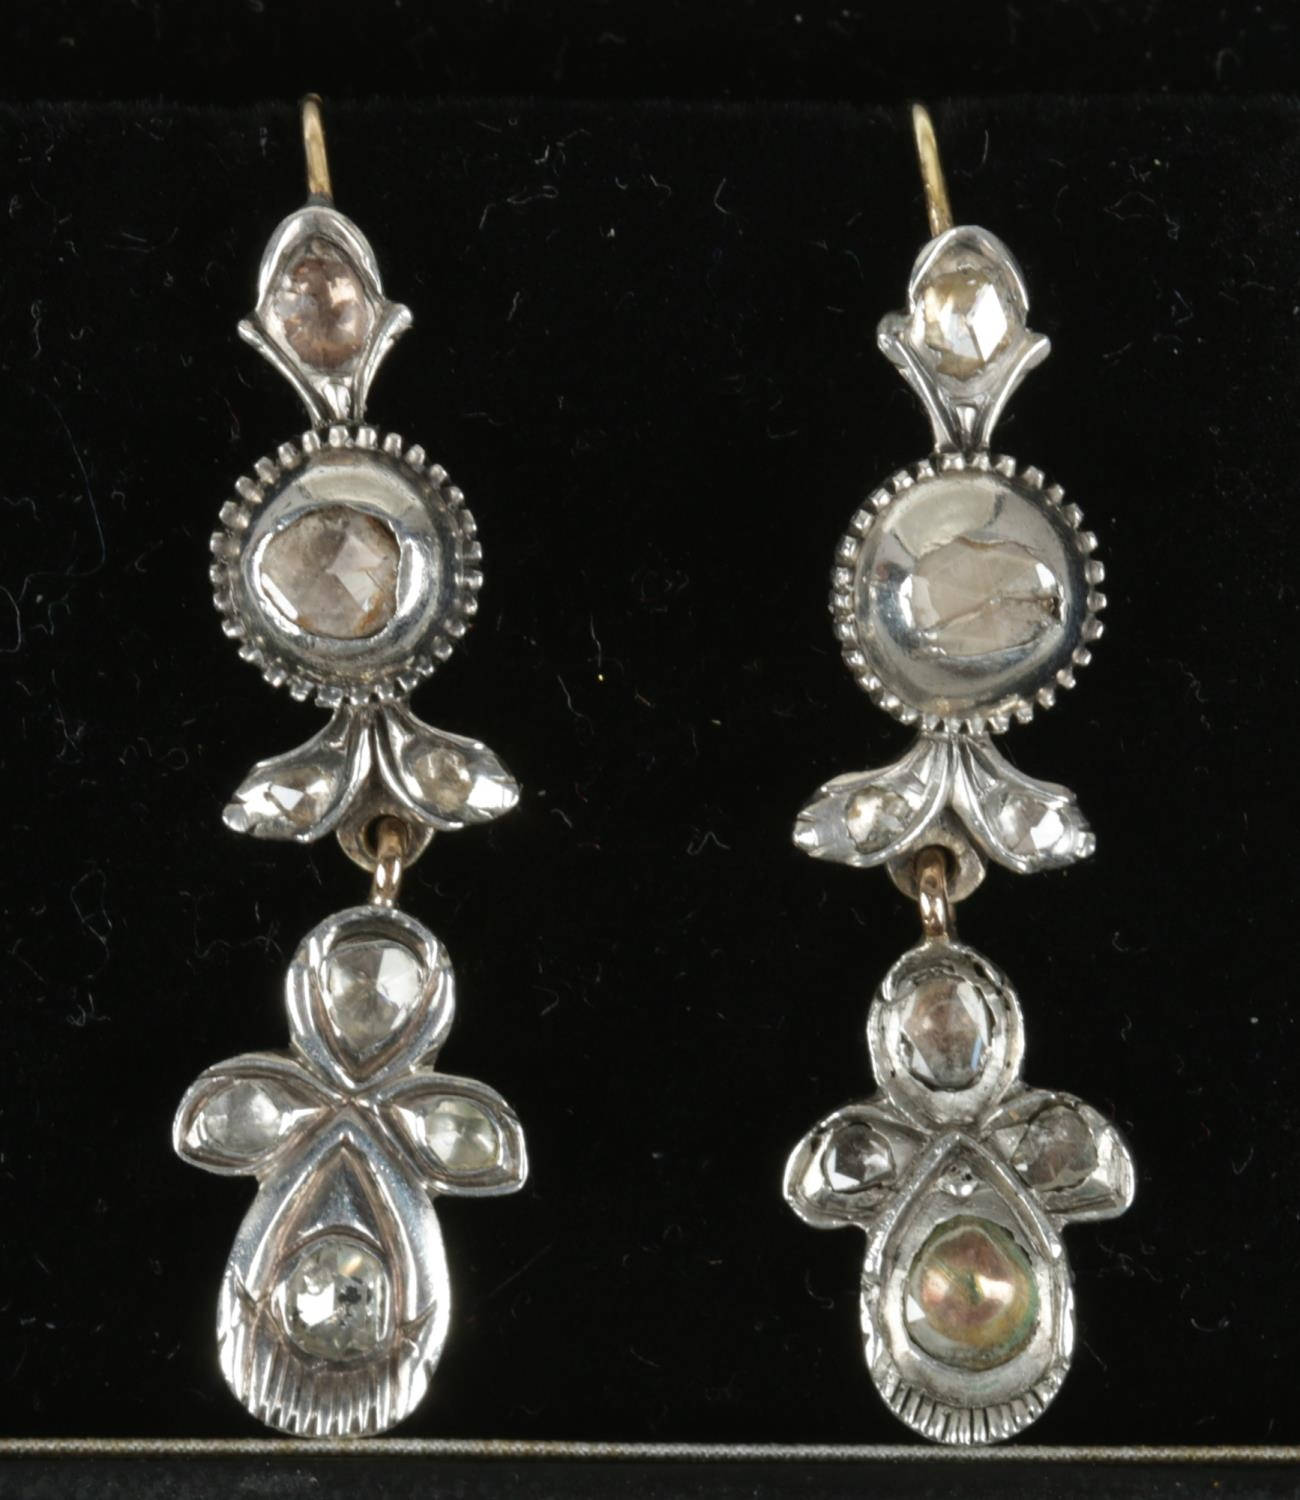 A pair of antique white metal and diamond drop earrings.